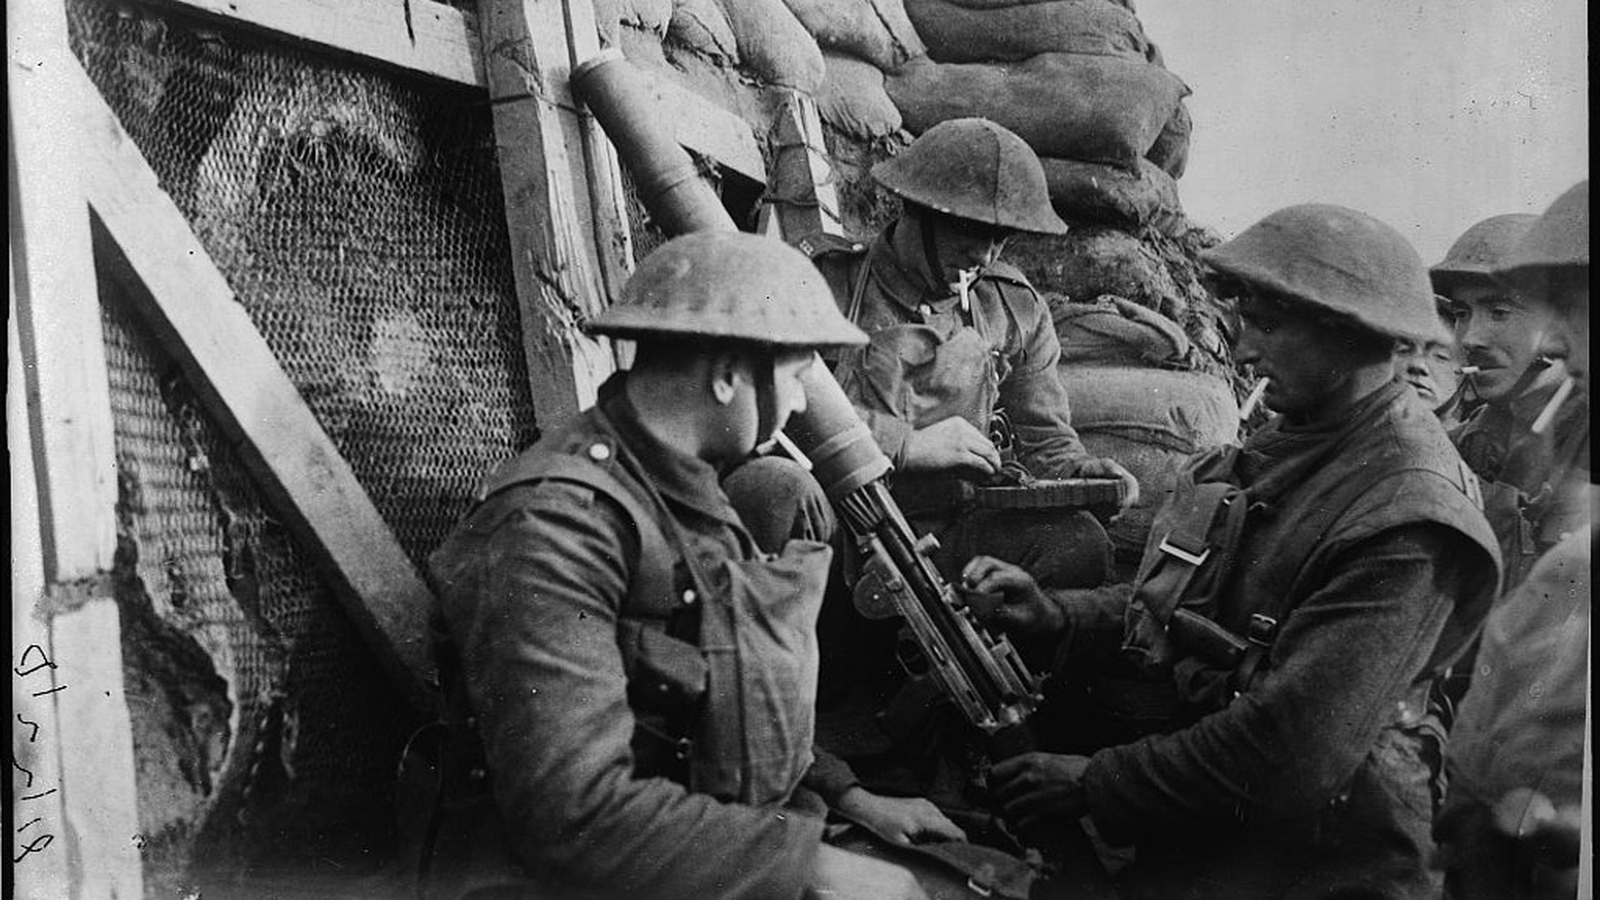 Image - The combat experience of more than half of the auxiliaries ambushed in Kilmichael was exclusively in trench warfare and they were unprepared for guerrilla warfare in Ireland